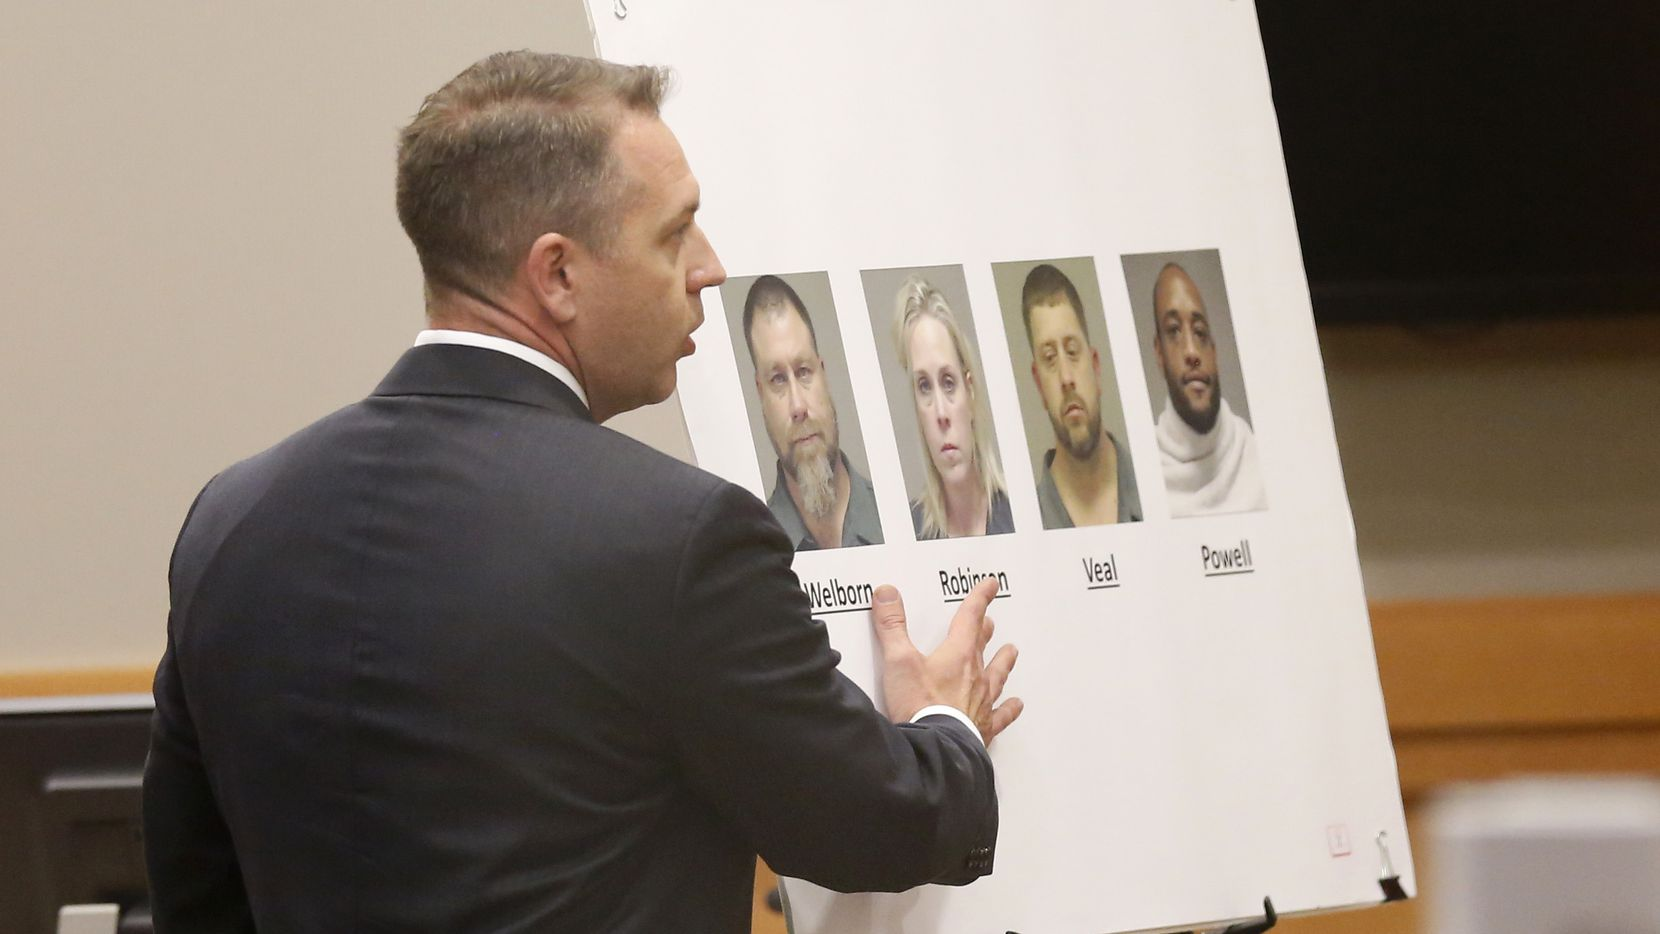 Ronnie Welborn, one of four people charged in a Collin County murder-for-hire plot, pled guilty to capital murder in the case and was sentenced this week to life in prison without parole. In this photo, Dewey Mitchell, a Collin County prosecutor, points to photos of the four alleged conspirators during the closing arguments of the capital murder trial of Robert Veal, another alleged conspirator, on Thursday, Jan. 30, 2020. (Vernon Bryant/The Dallas Morning News)